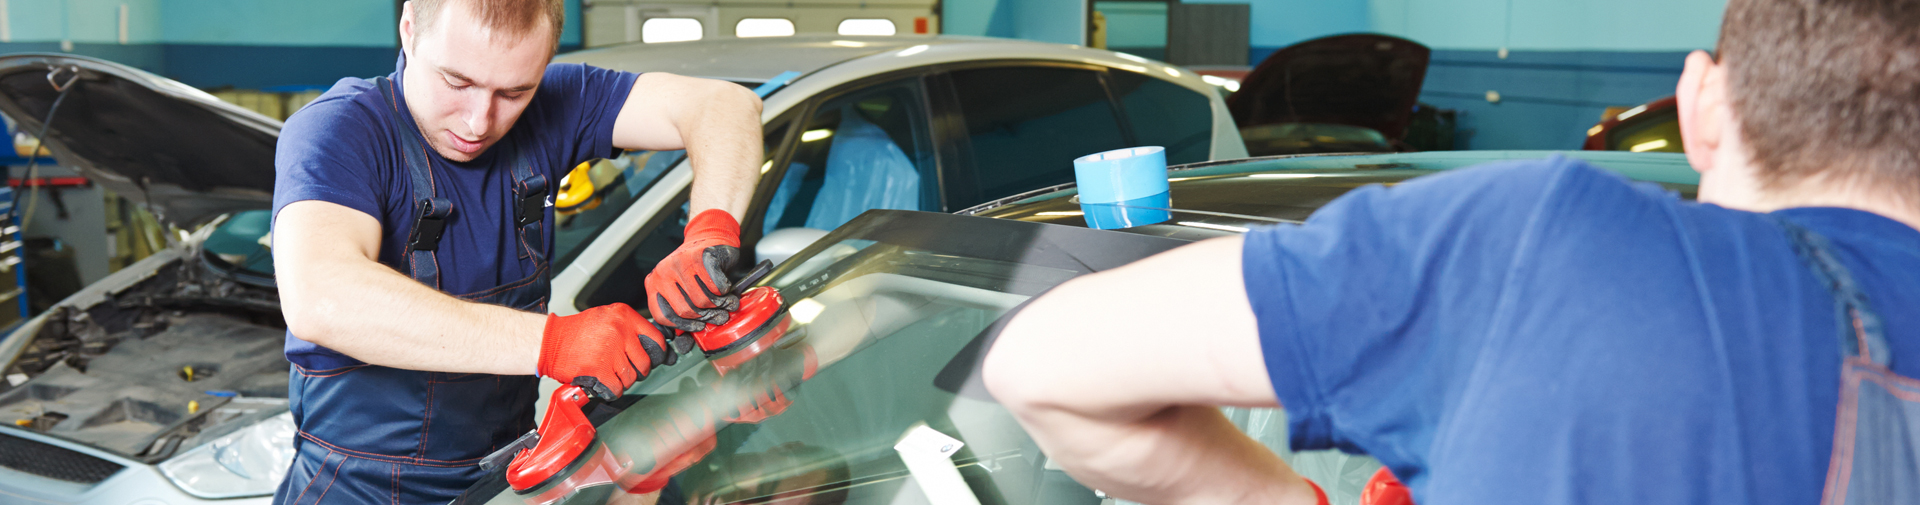 Auto Technicians Replacing Windshield in Tempe AZ